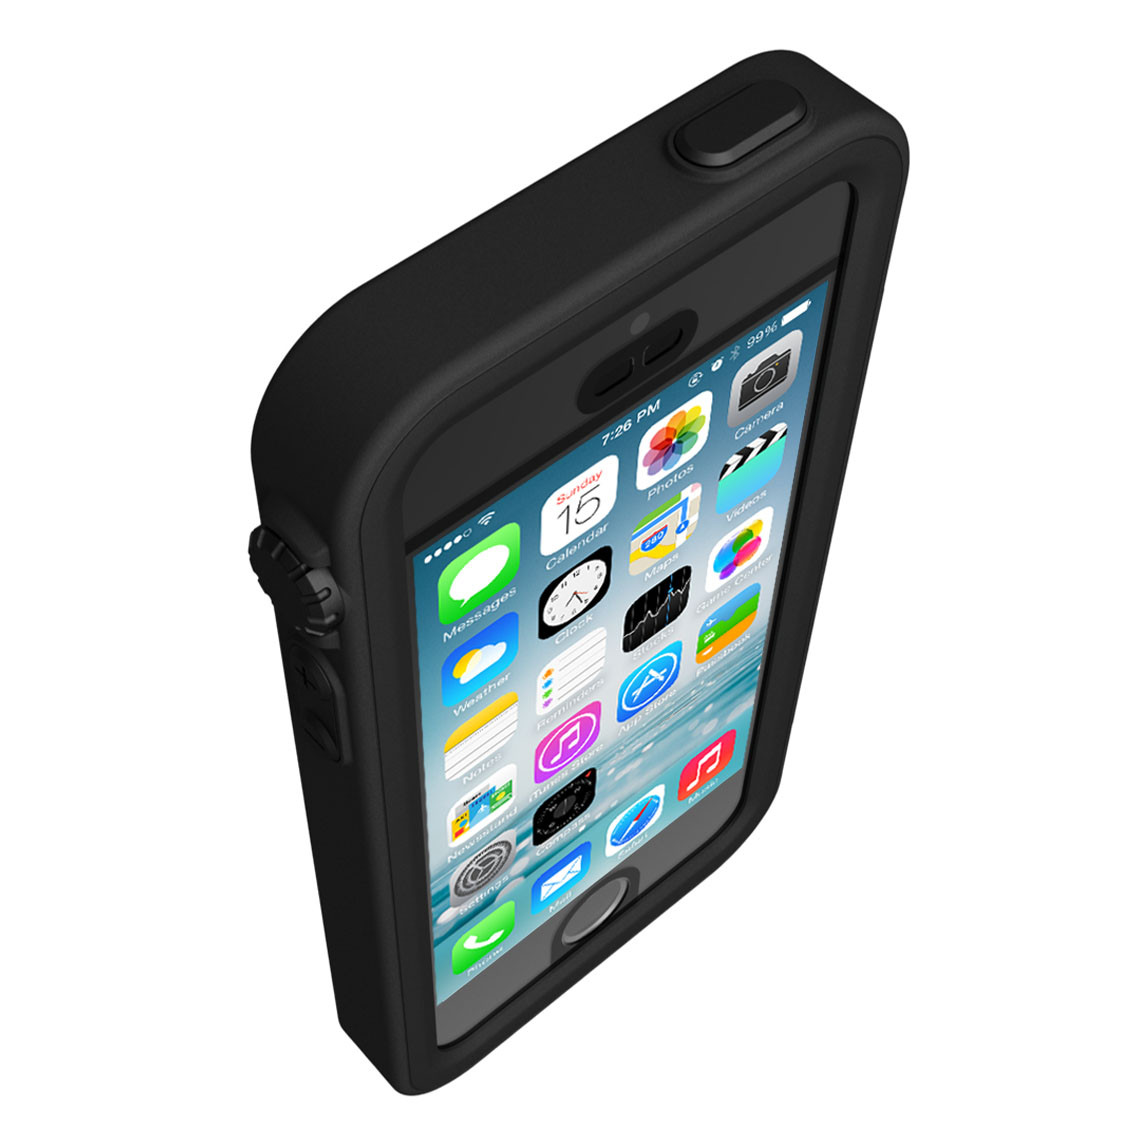 iphone 5 waterproof case catalyst iphone 5 waterproof buytec co uk 2748